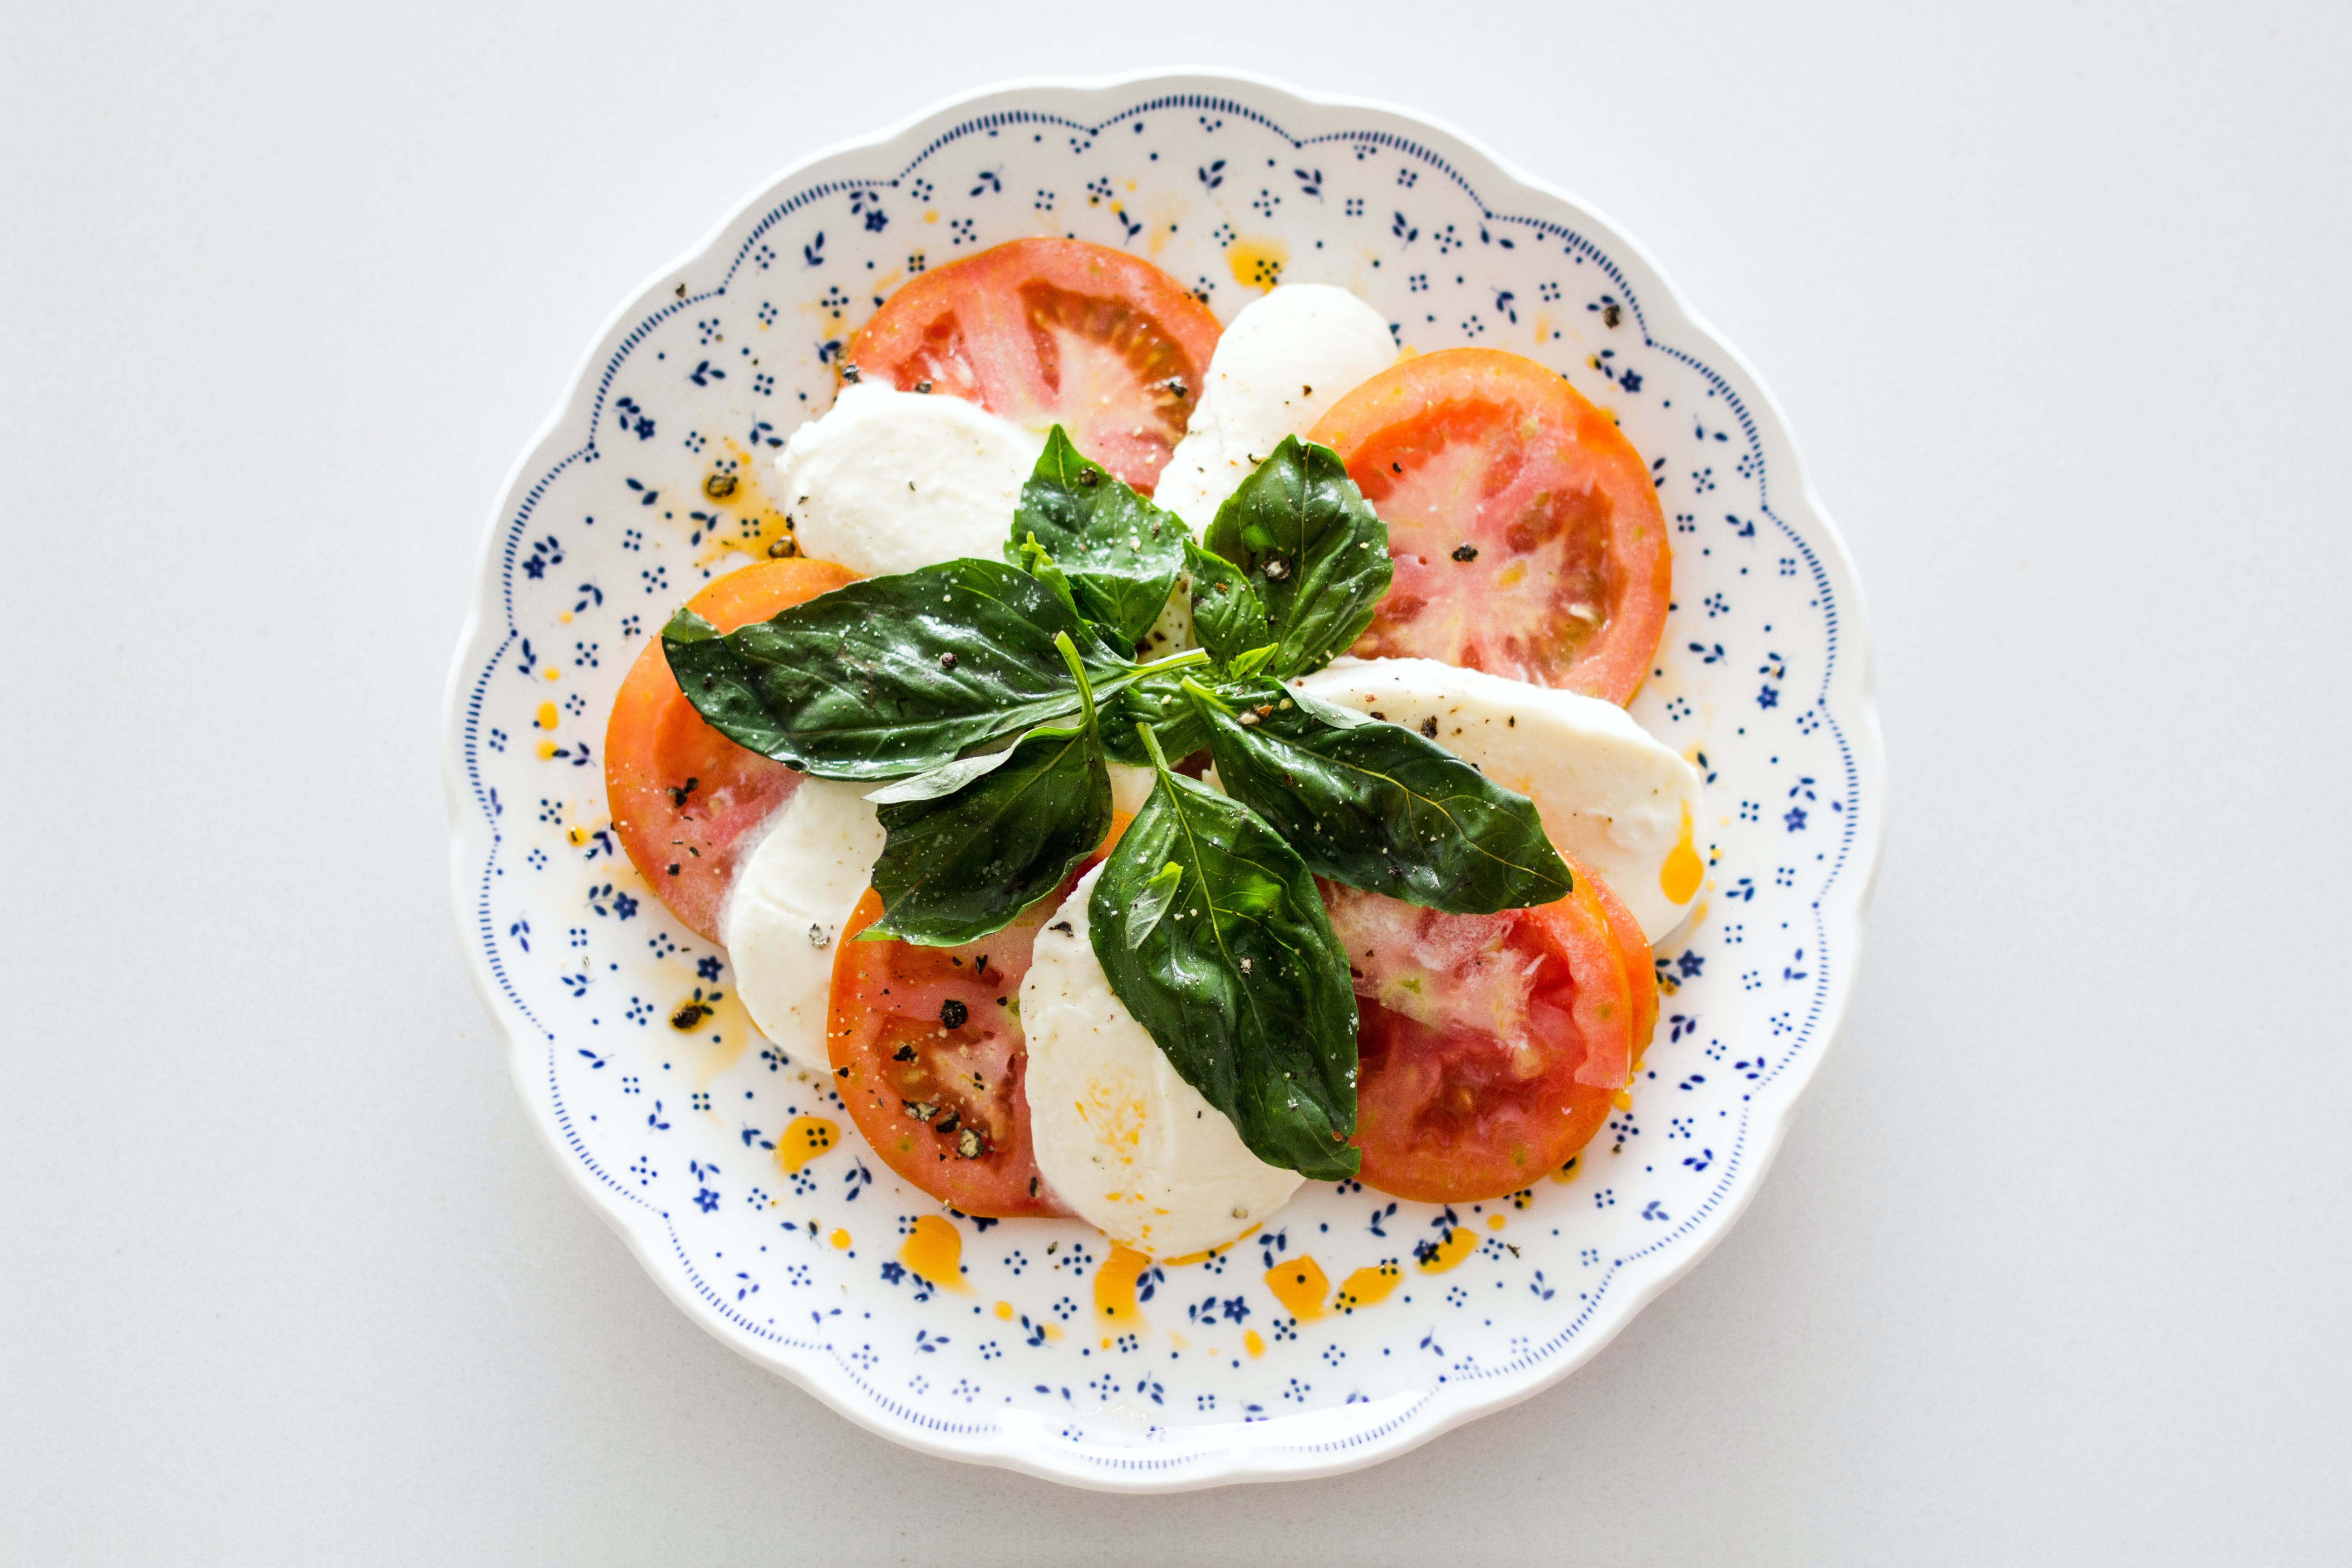 Vegetable Salad on White and Blue Round Floral Plate